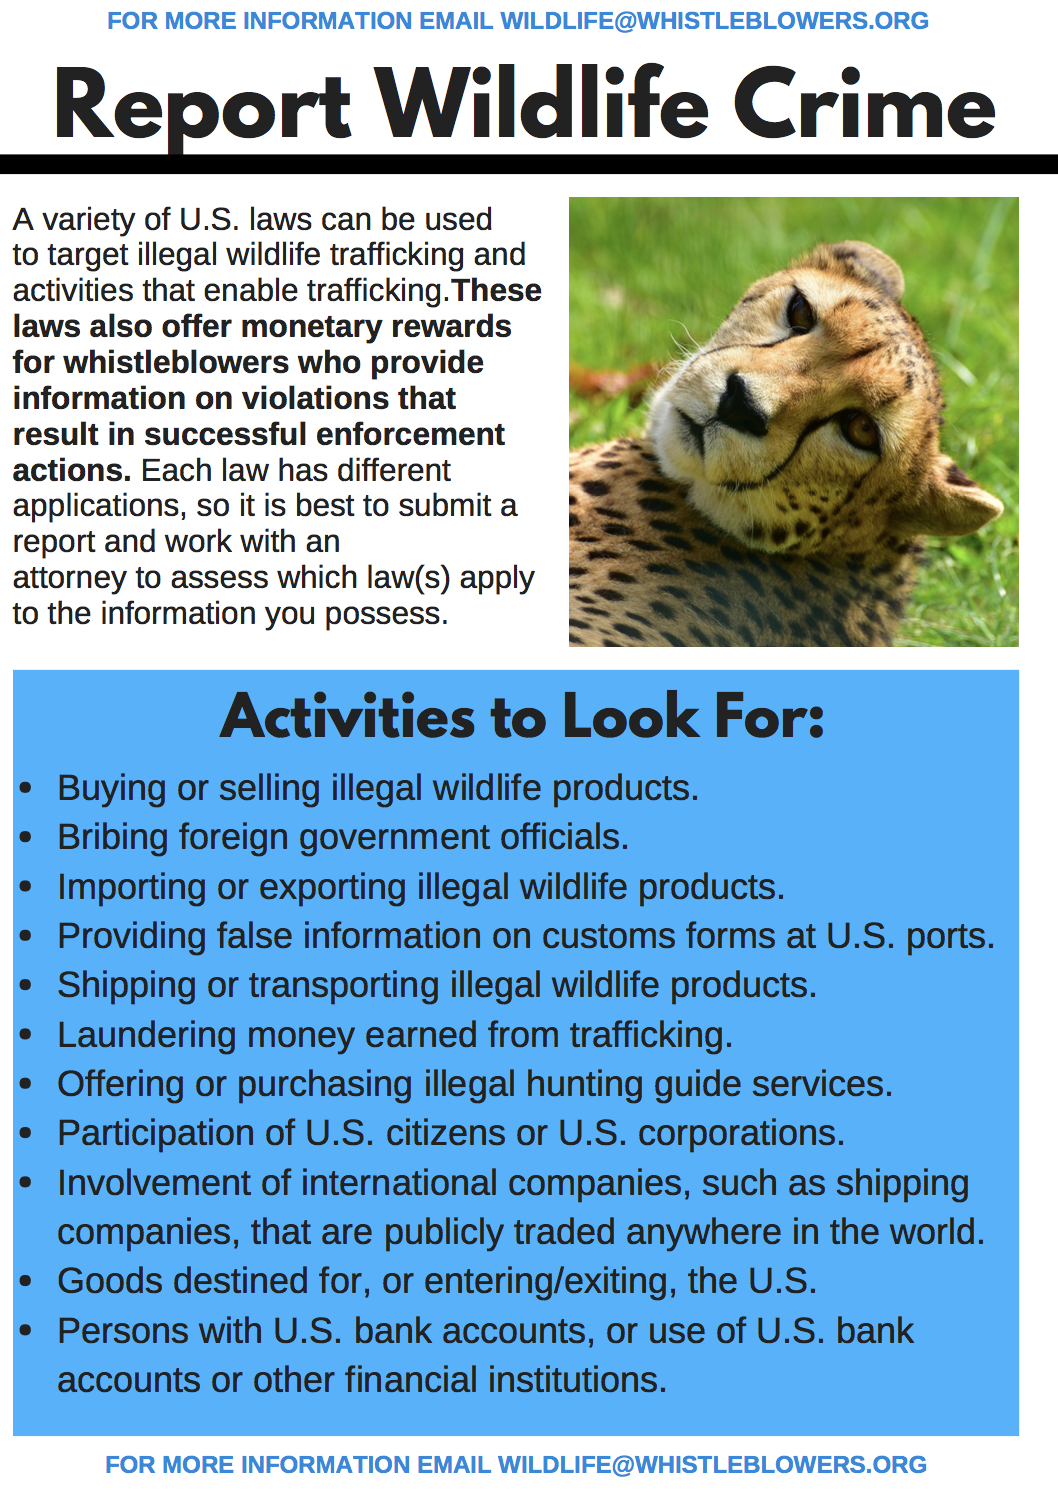 Guidance for reporting wildlife crime